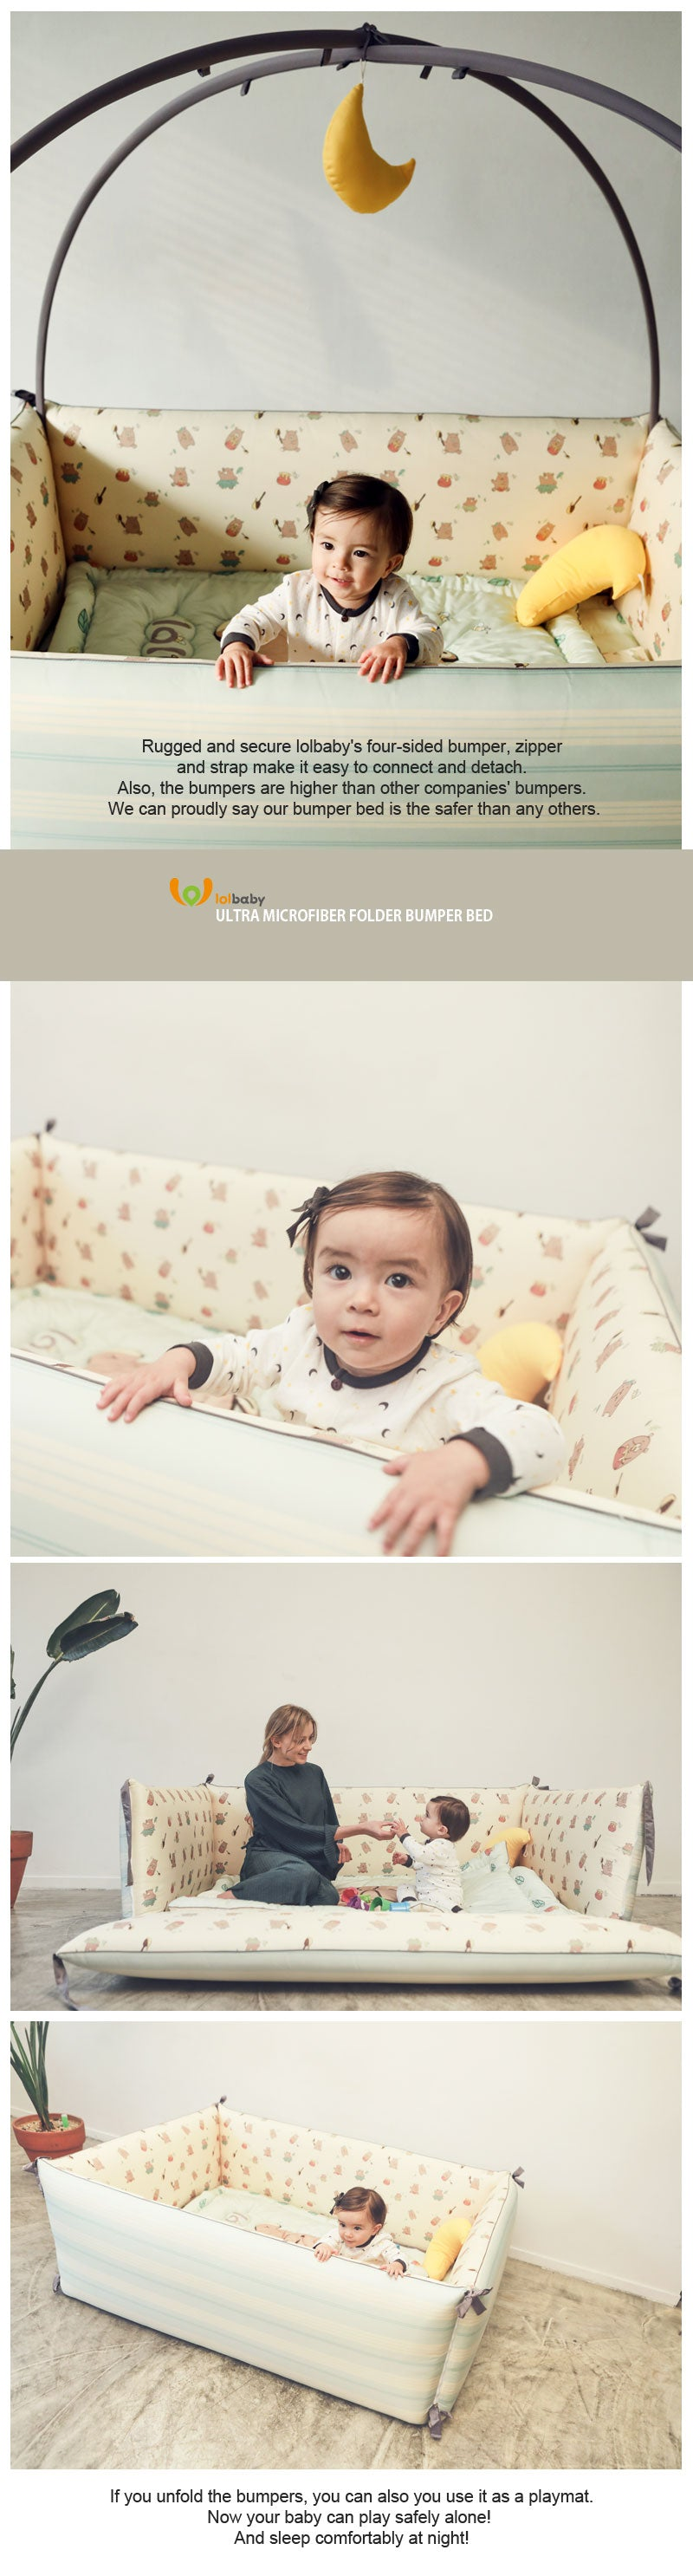 Award Winning LOLBaby Convertible Bumper Bed